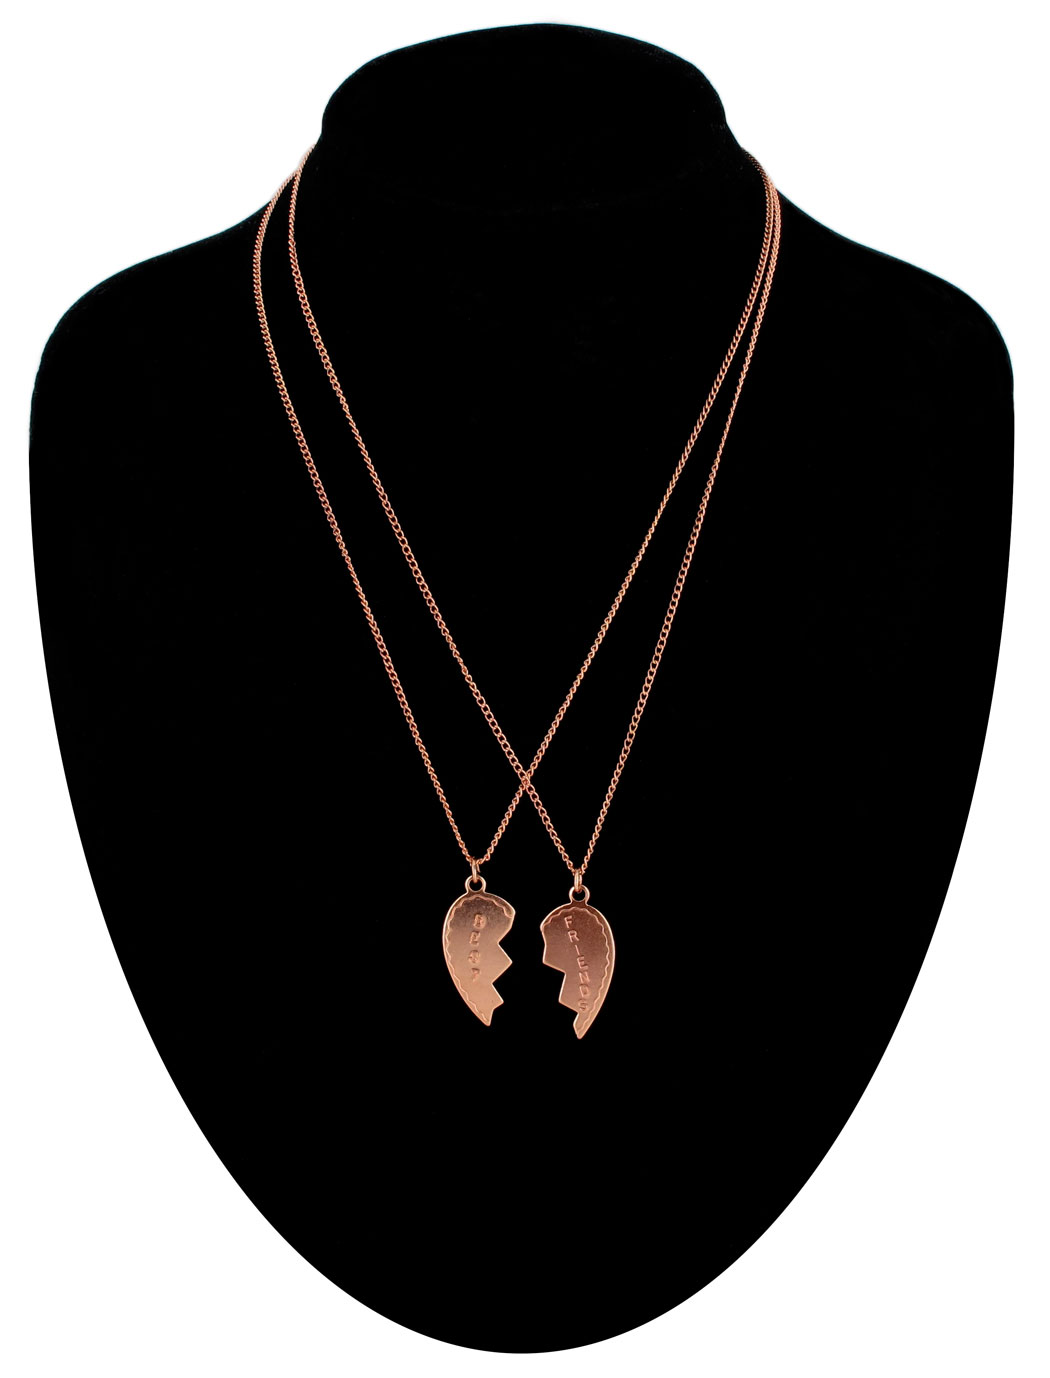 Ky & Co Necklace Bff Set Best Friends Broken Heart Rose Gold Tone Friendship USA